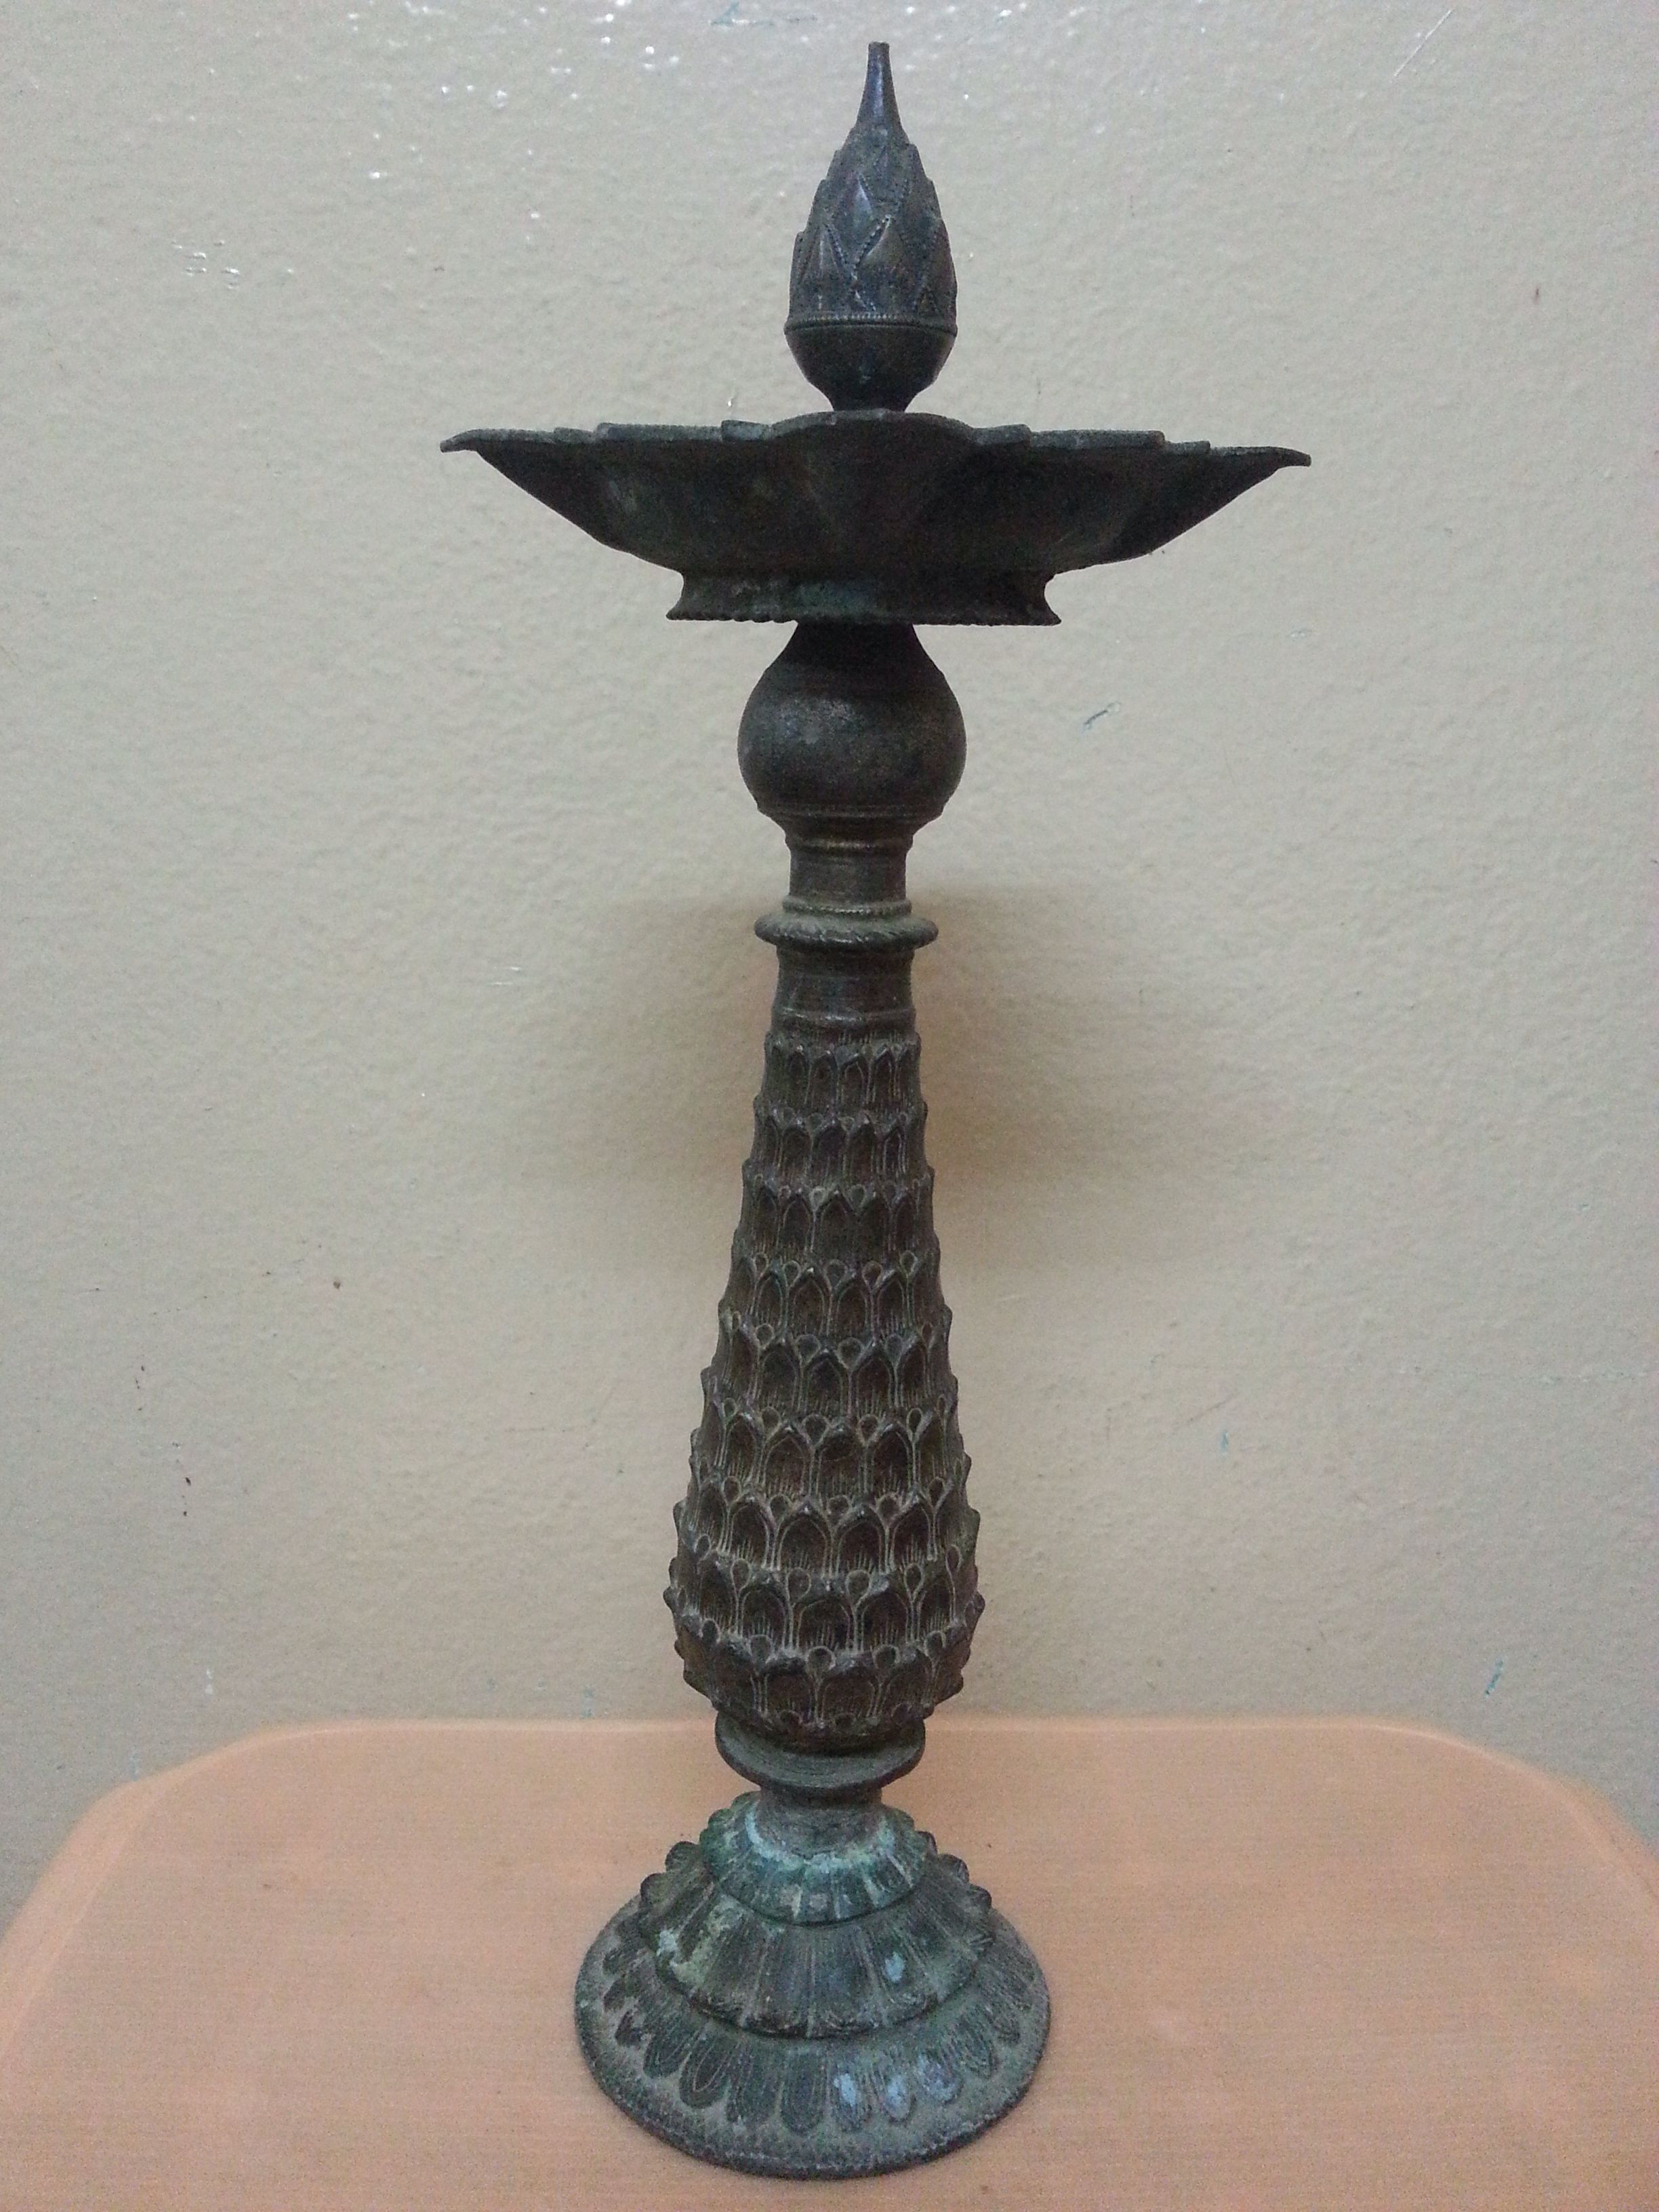 Pineapple lamp from the Deccan. The base and the oil basin